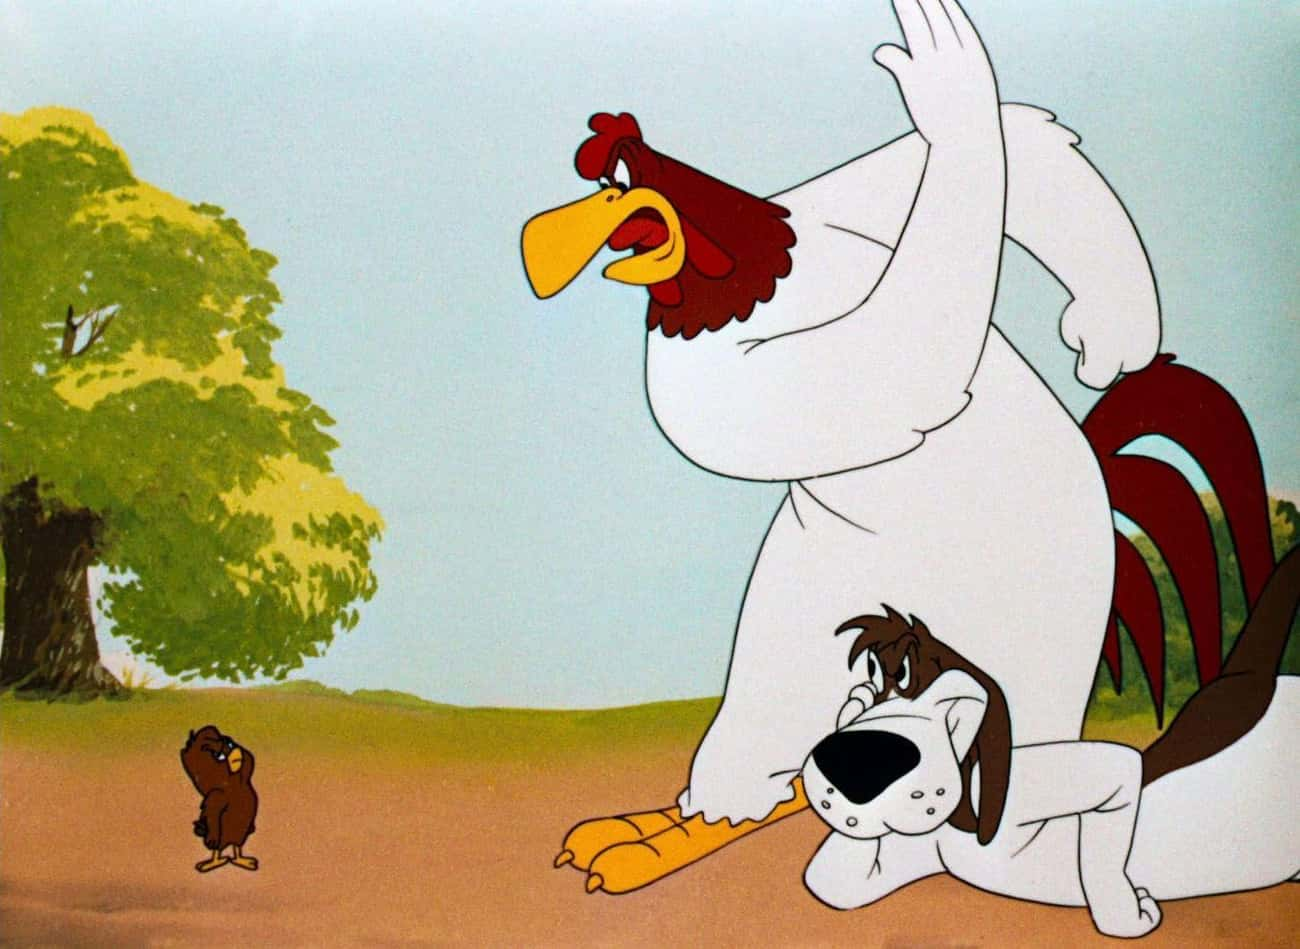 Bowling Ball is listed (or ranked) 2 on the list The Best Foghorn Leghorn Character Quotes From 'Looney Tunes'